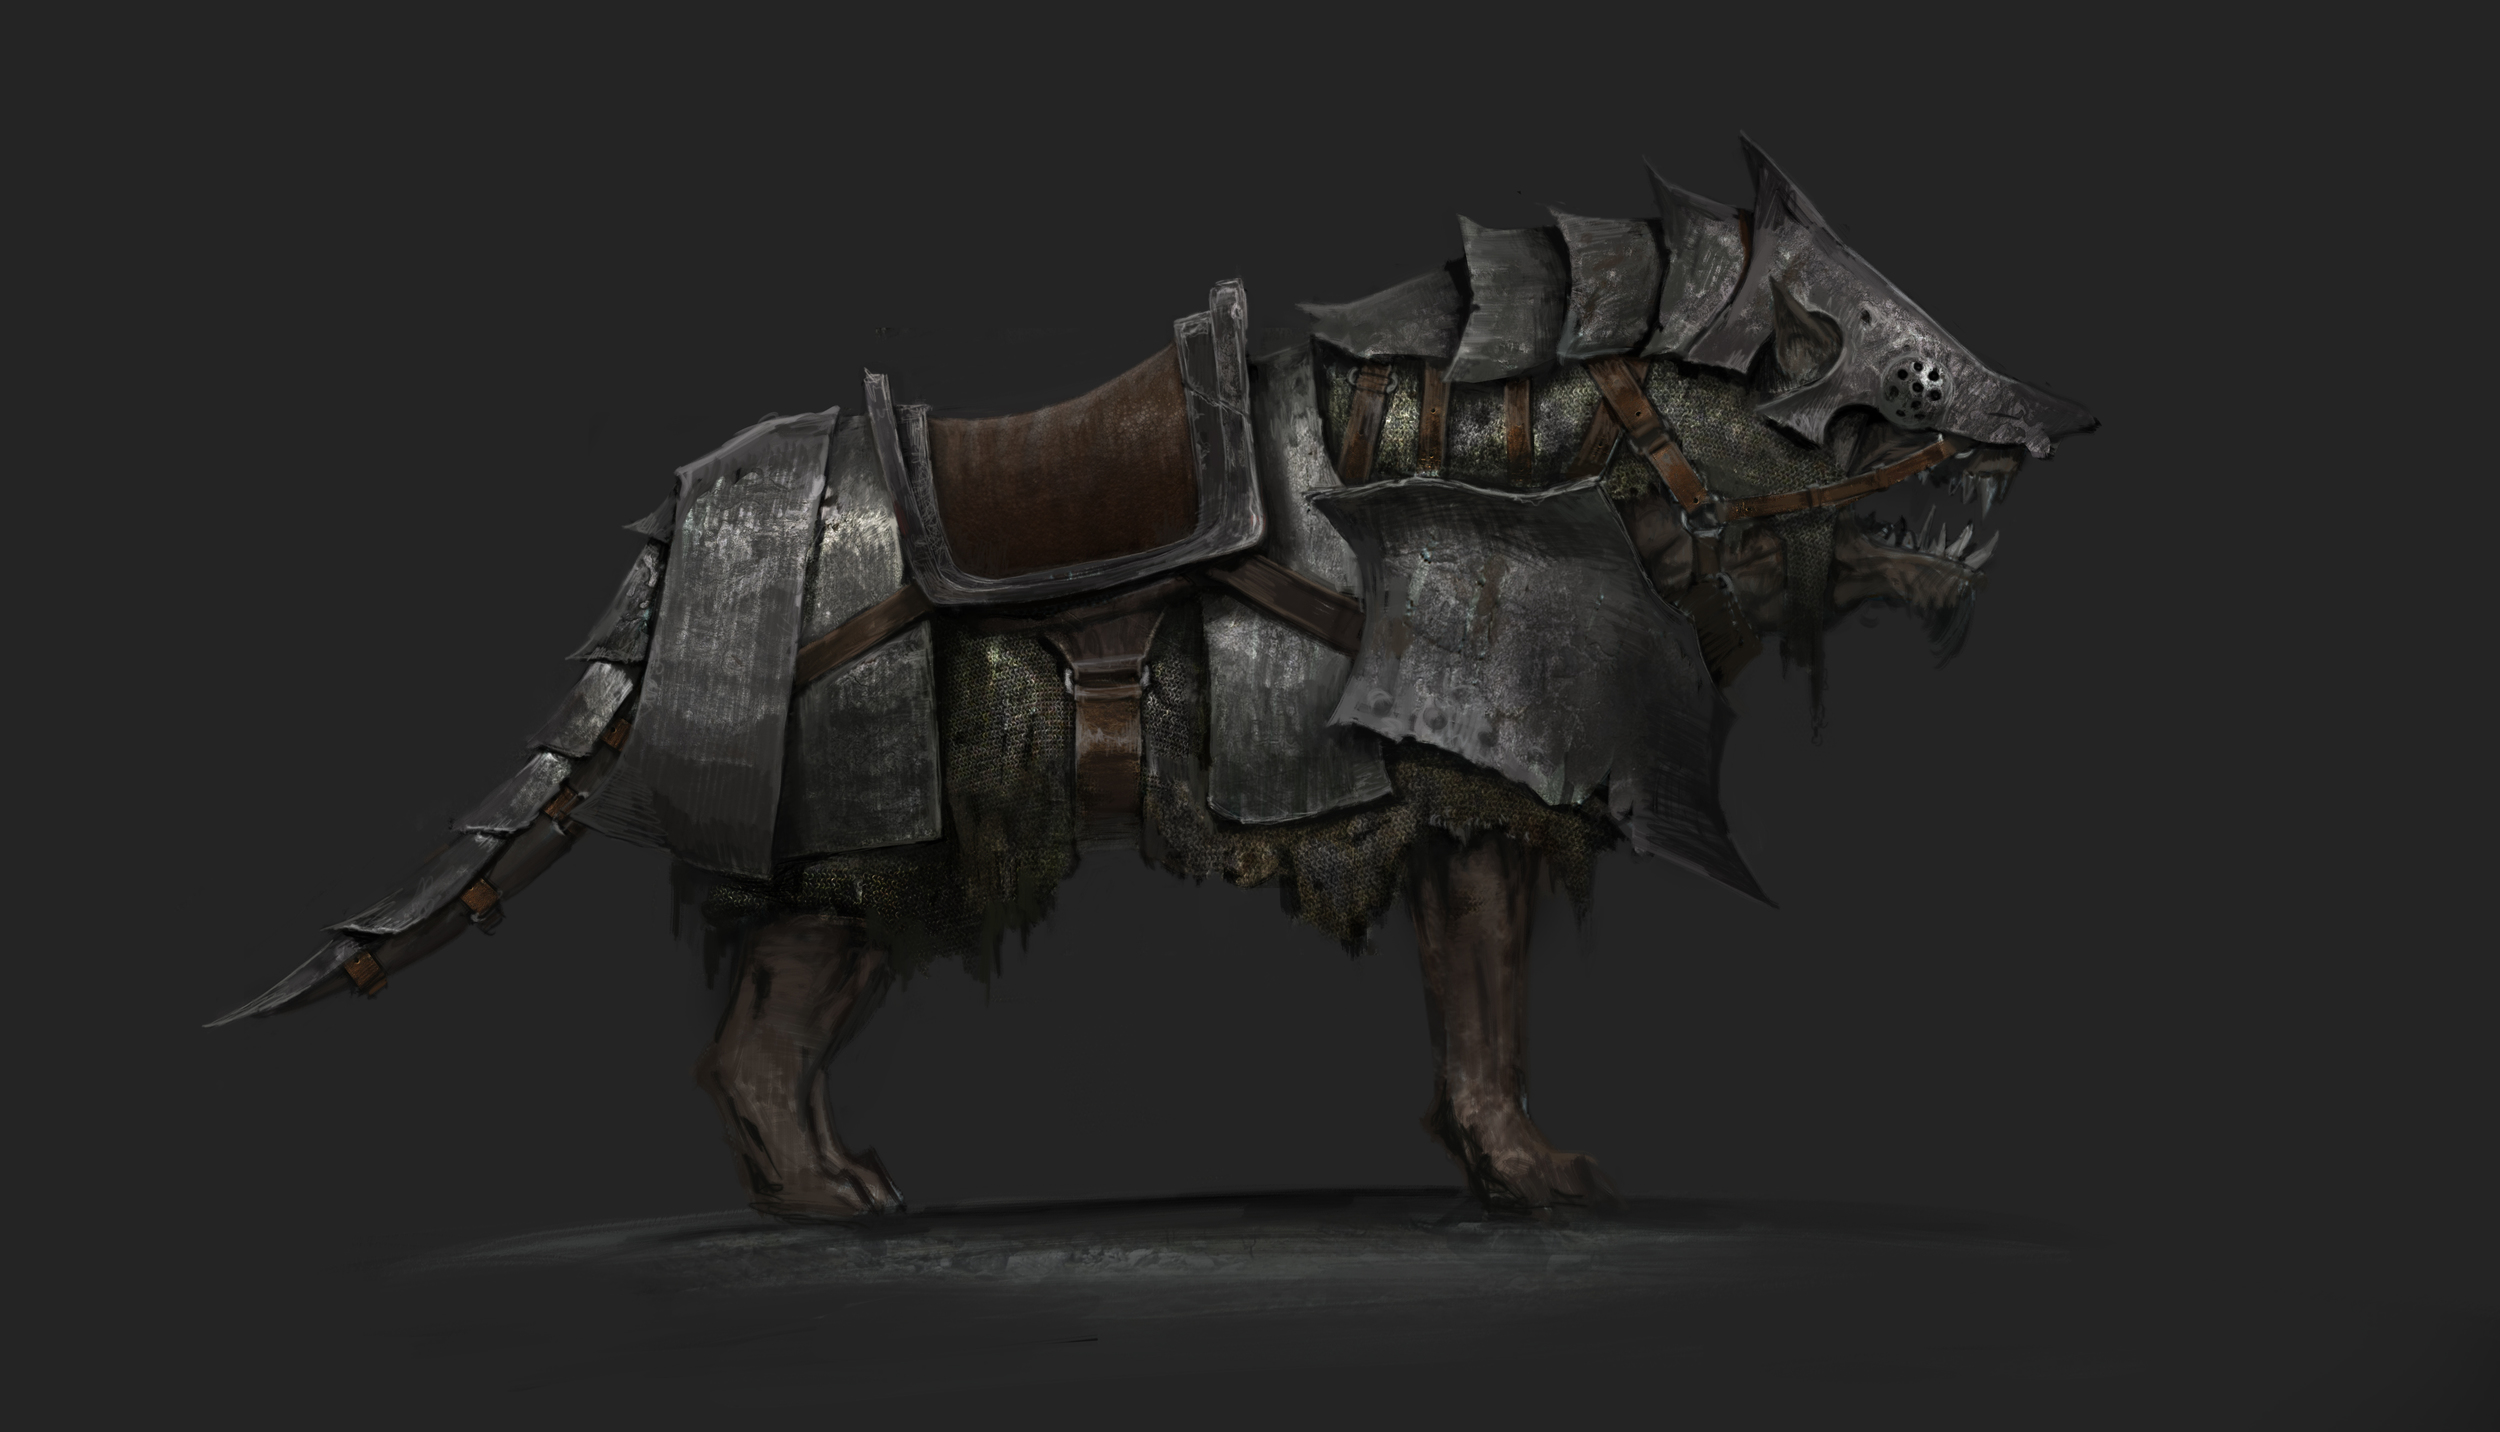 units_orc_armored_warg.jpg